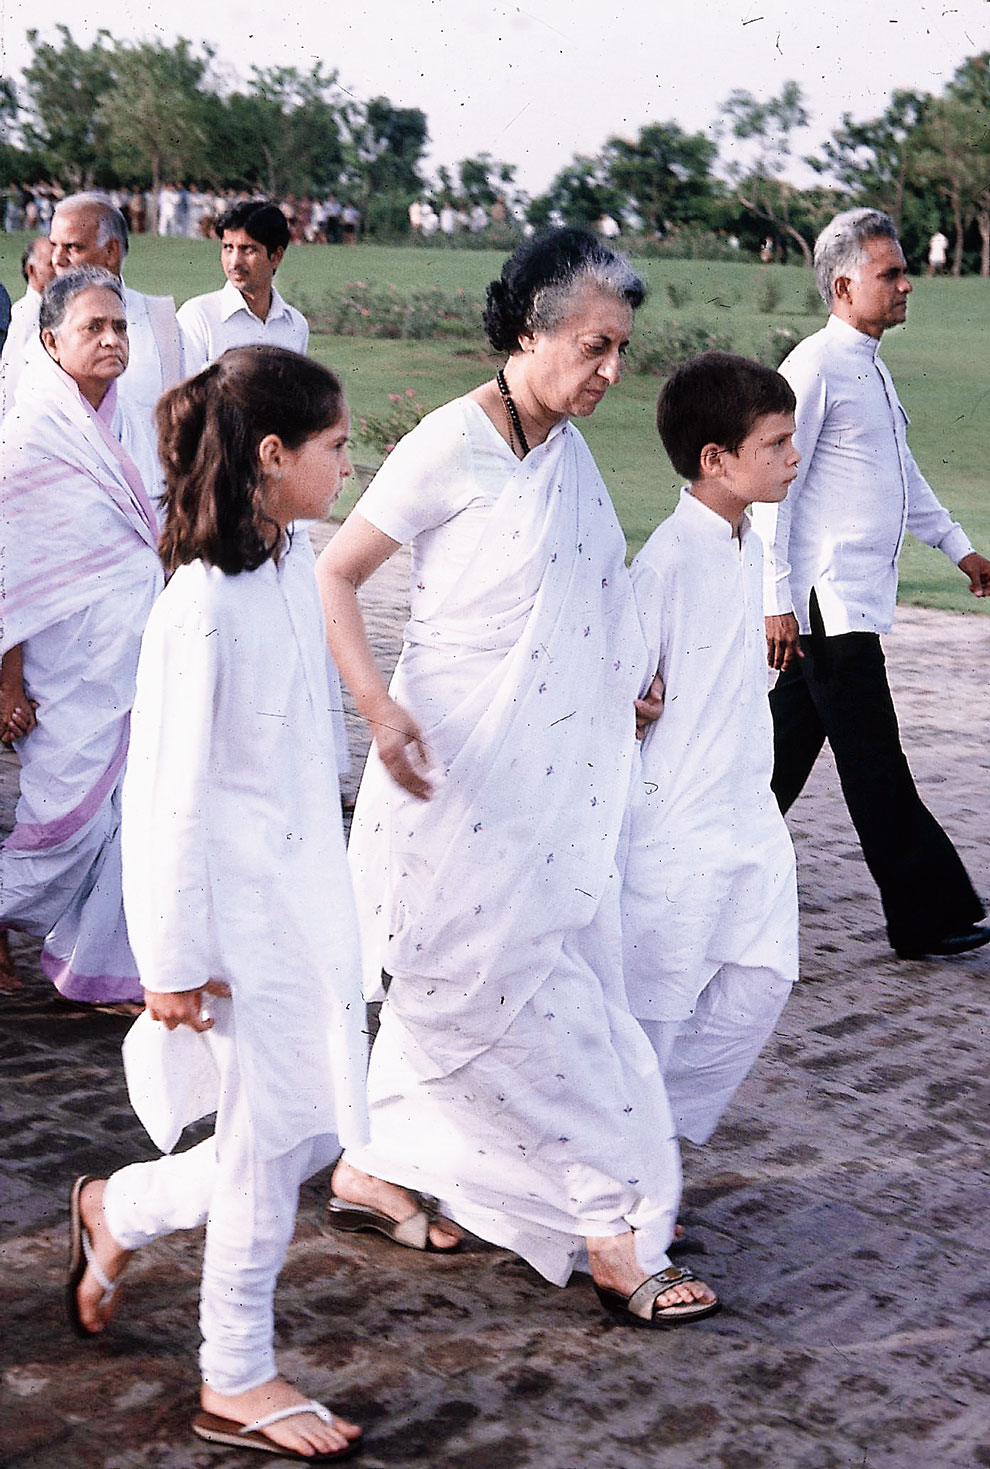 Sibling revelry: Priyanka goes from support to comrade-in-arms - Telegraph India